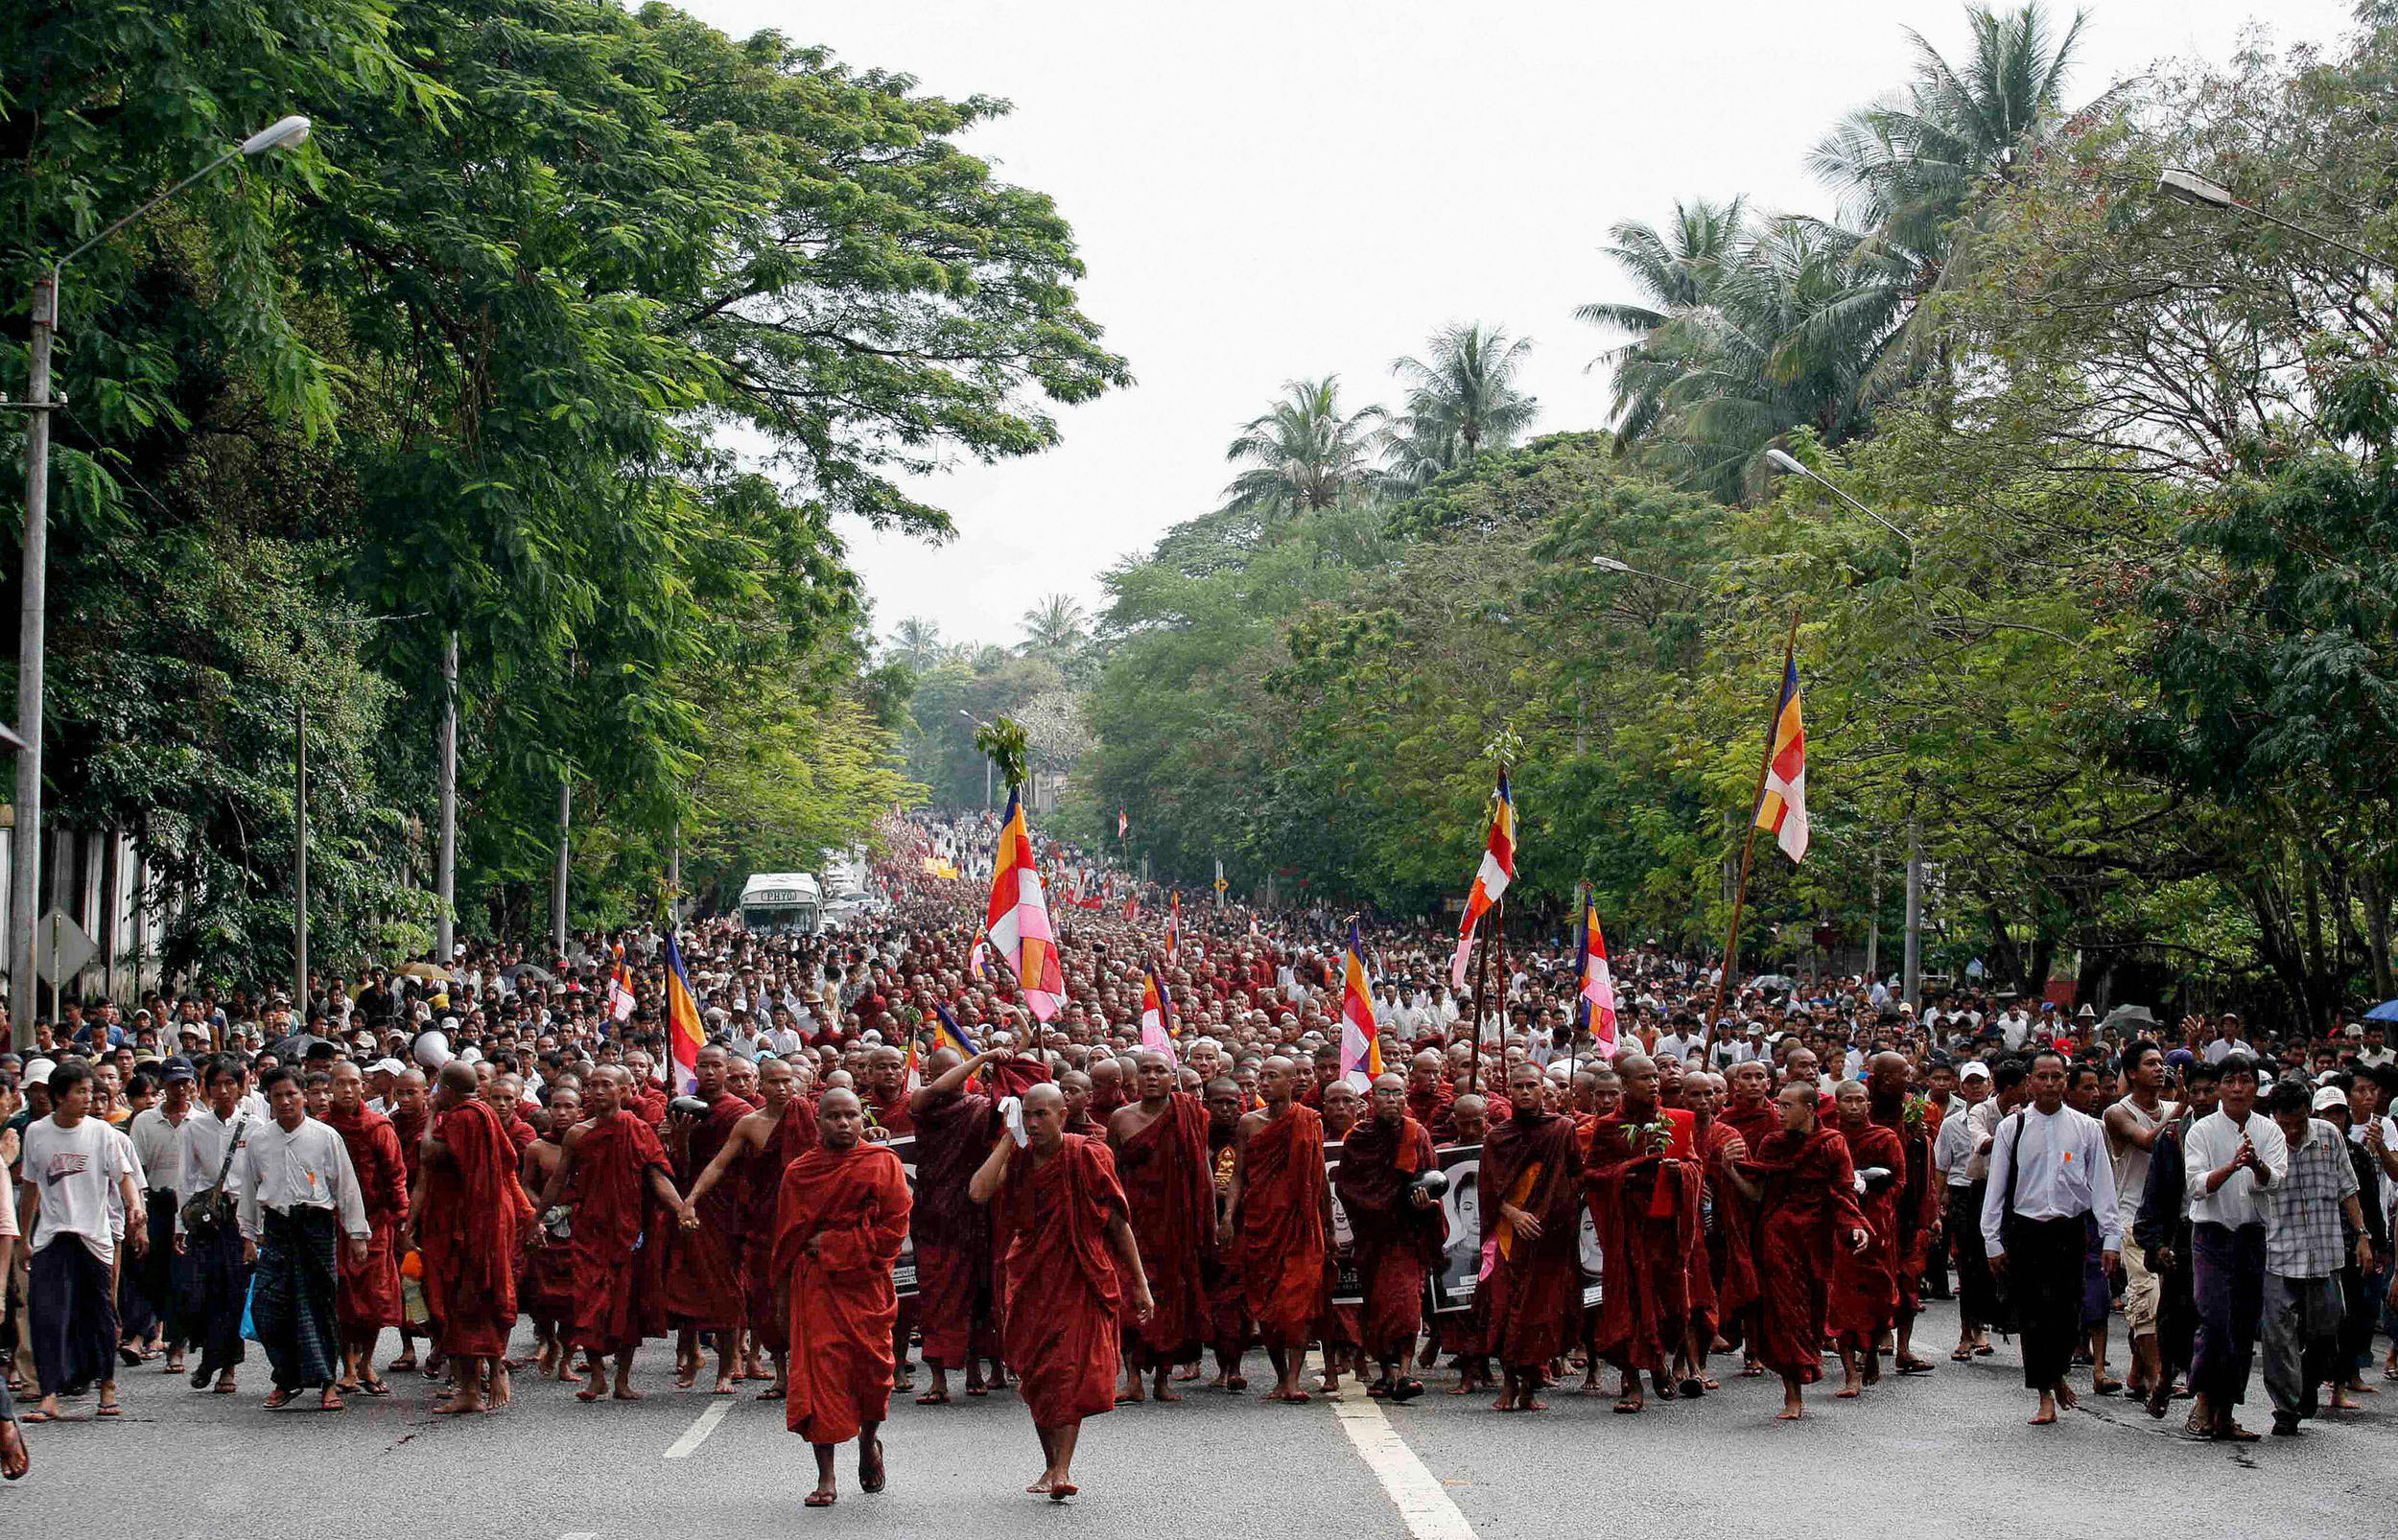 Thousands of Buddhist monks took part in Burma's Saffron Revolution (2007)